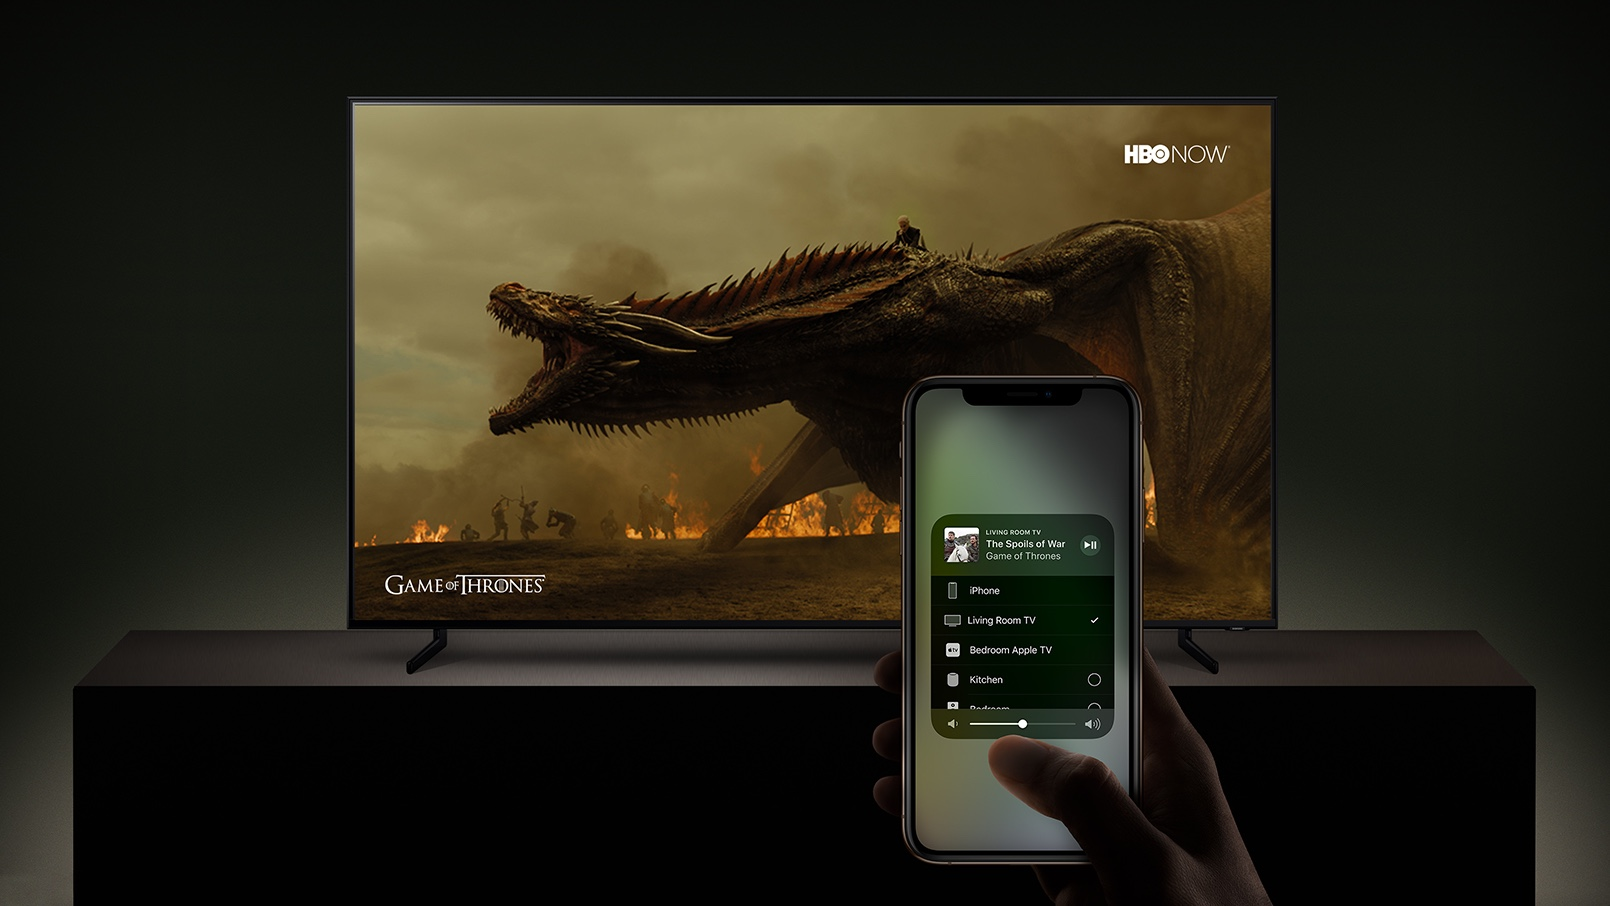 Samsung Smart TV AirPlay 2